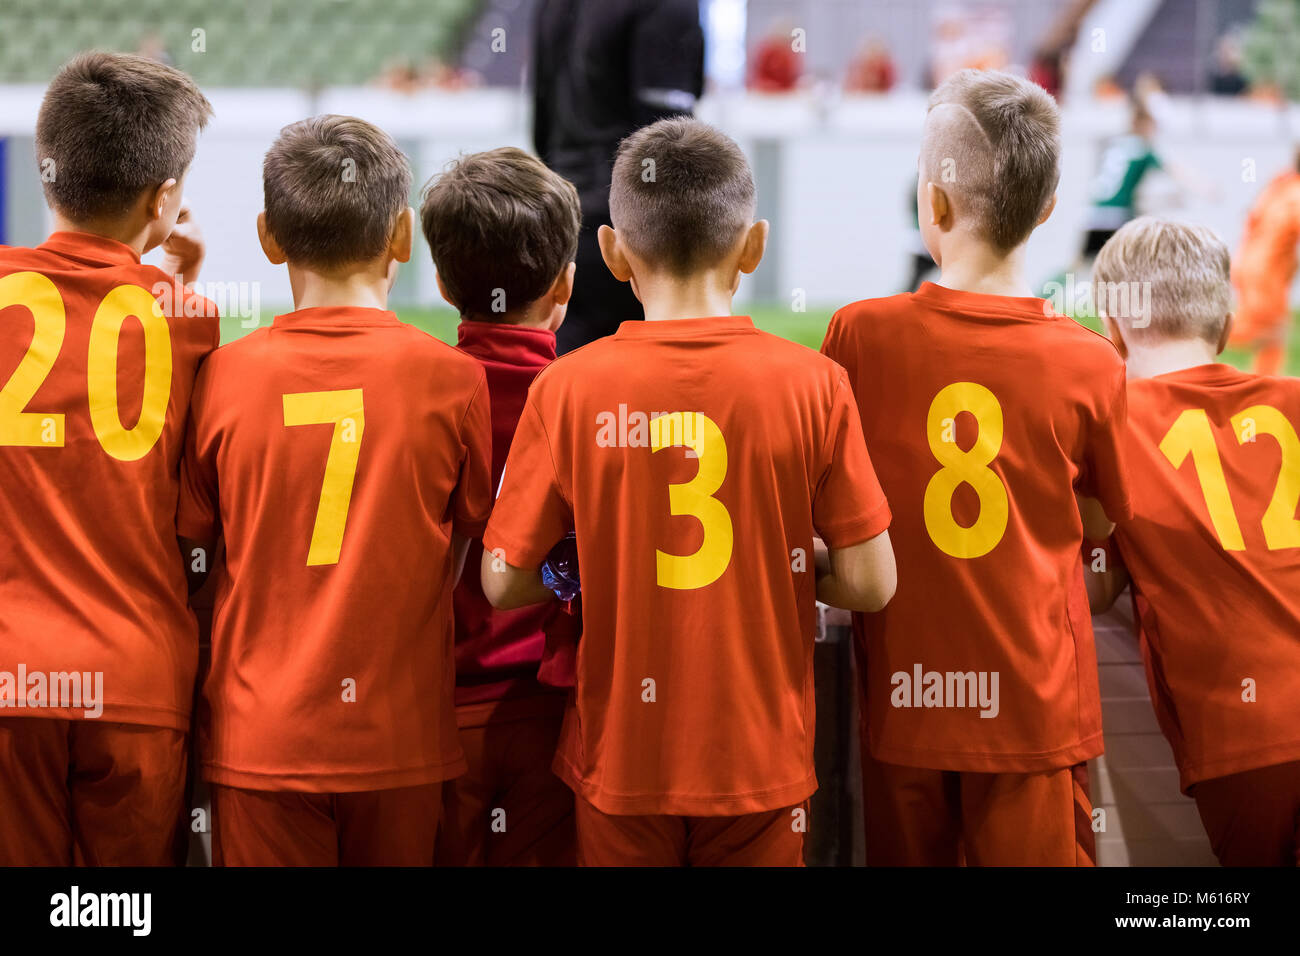 Indoor soccer team. Futsal indoor soccer match for kids. Children supporting teammates. Sports arena in the background. - Stock Image